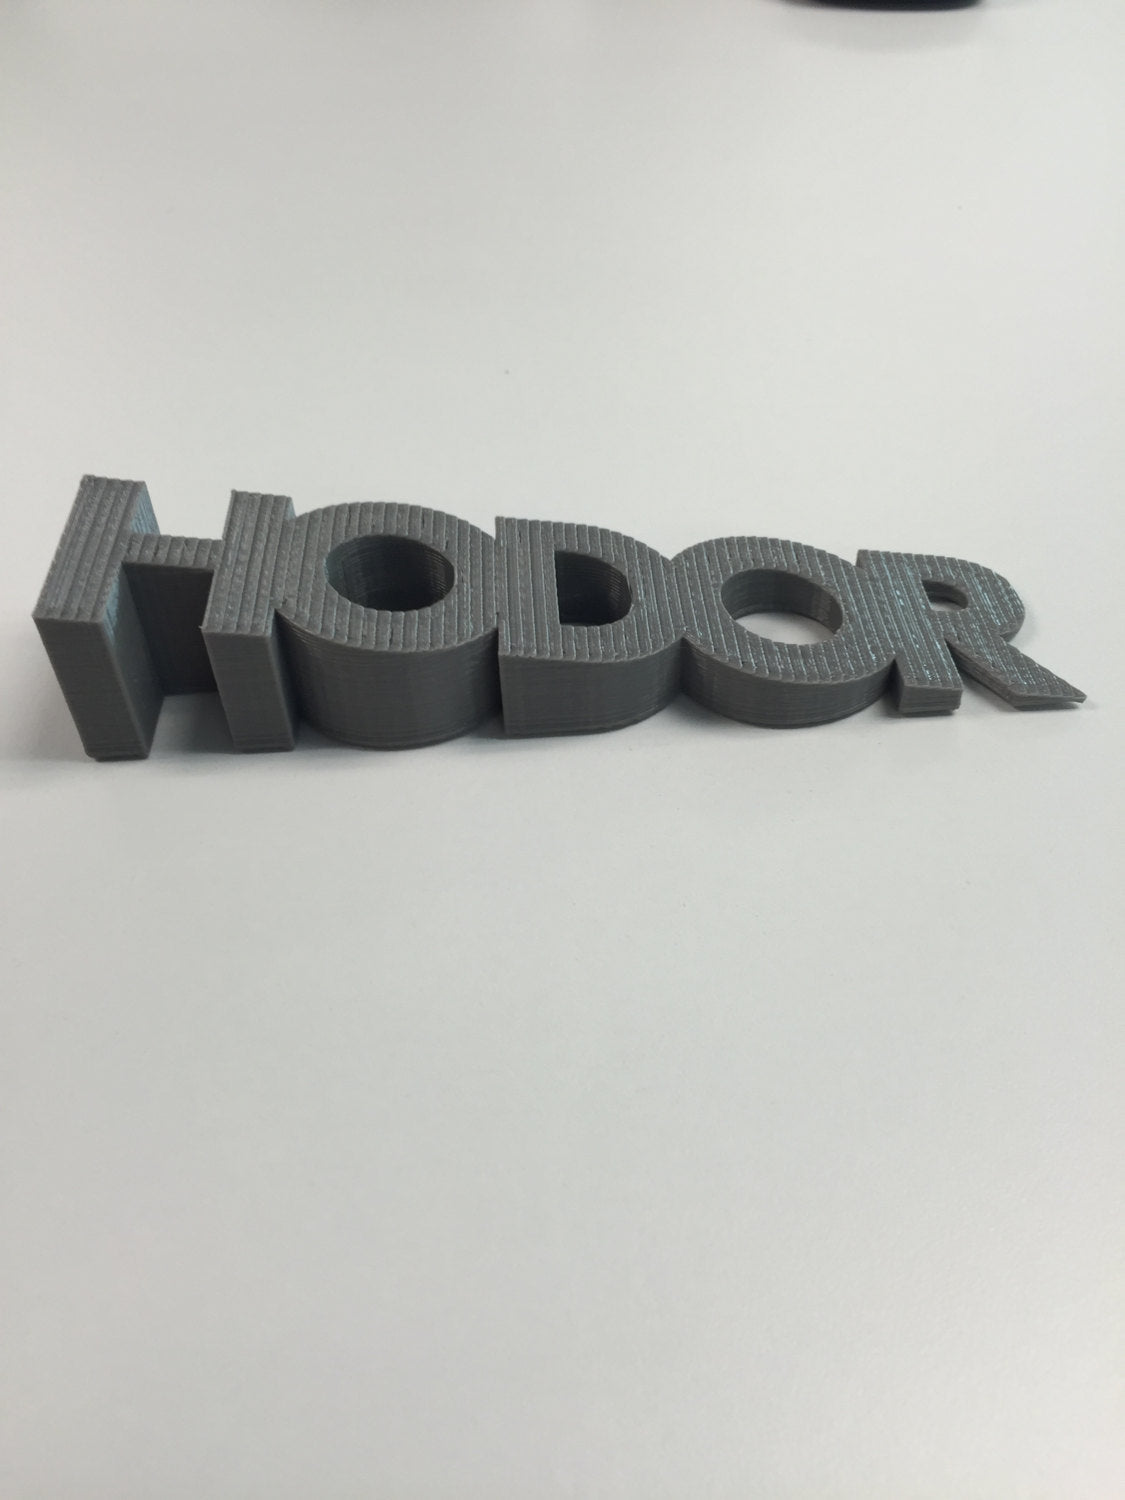 Game of Thrones inspired Hodor door stop! Memorialize Hodor's greatest sacrifice in style! 3D printed plastic door stop